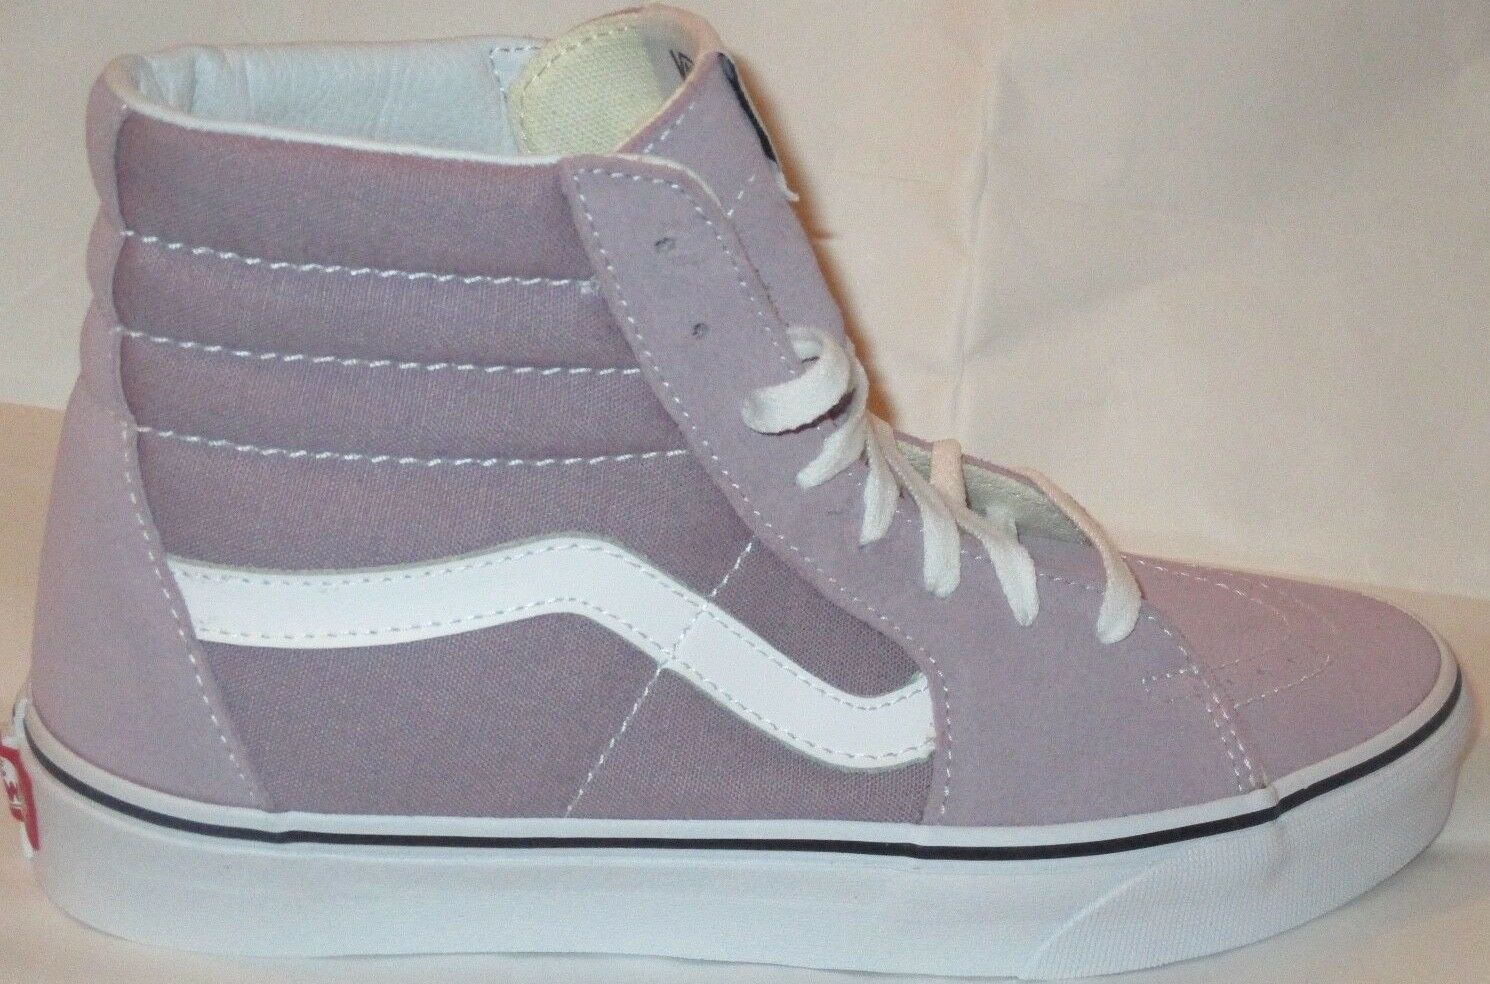 MEN'S VANS SK8-HI SEA FOG TRUE WHITE  VNOA38GEOVS  SHOES SIZE 7.5